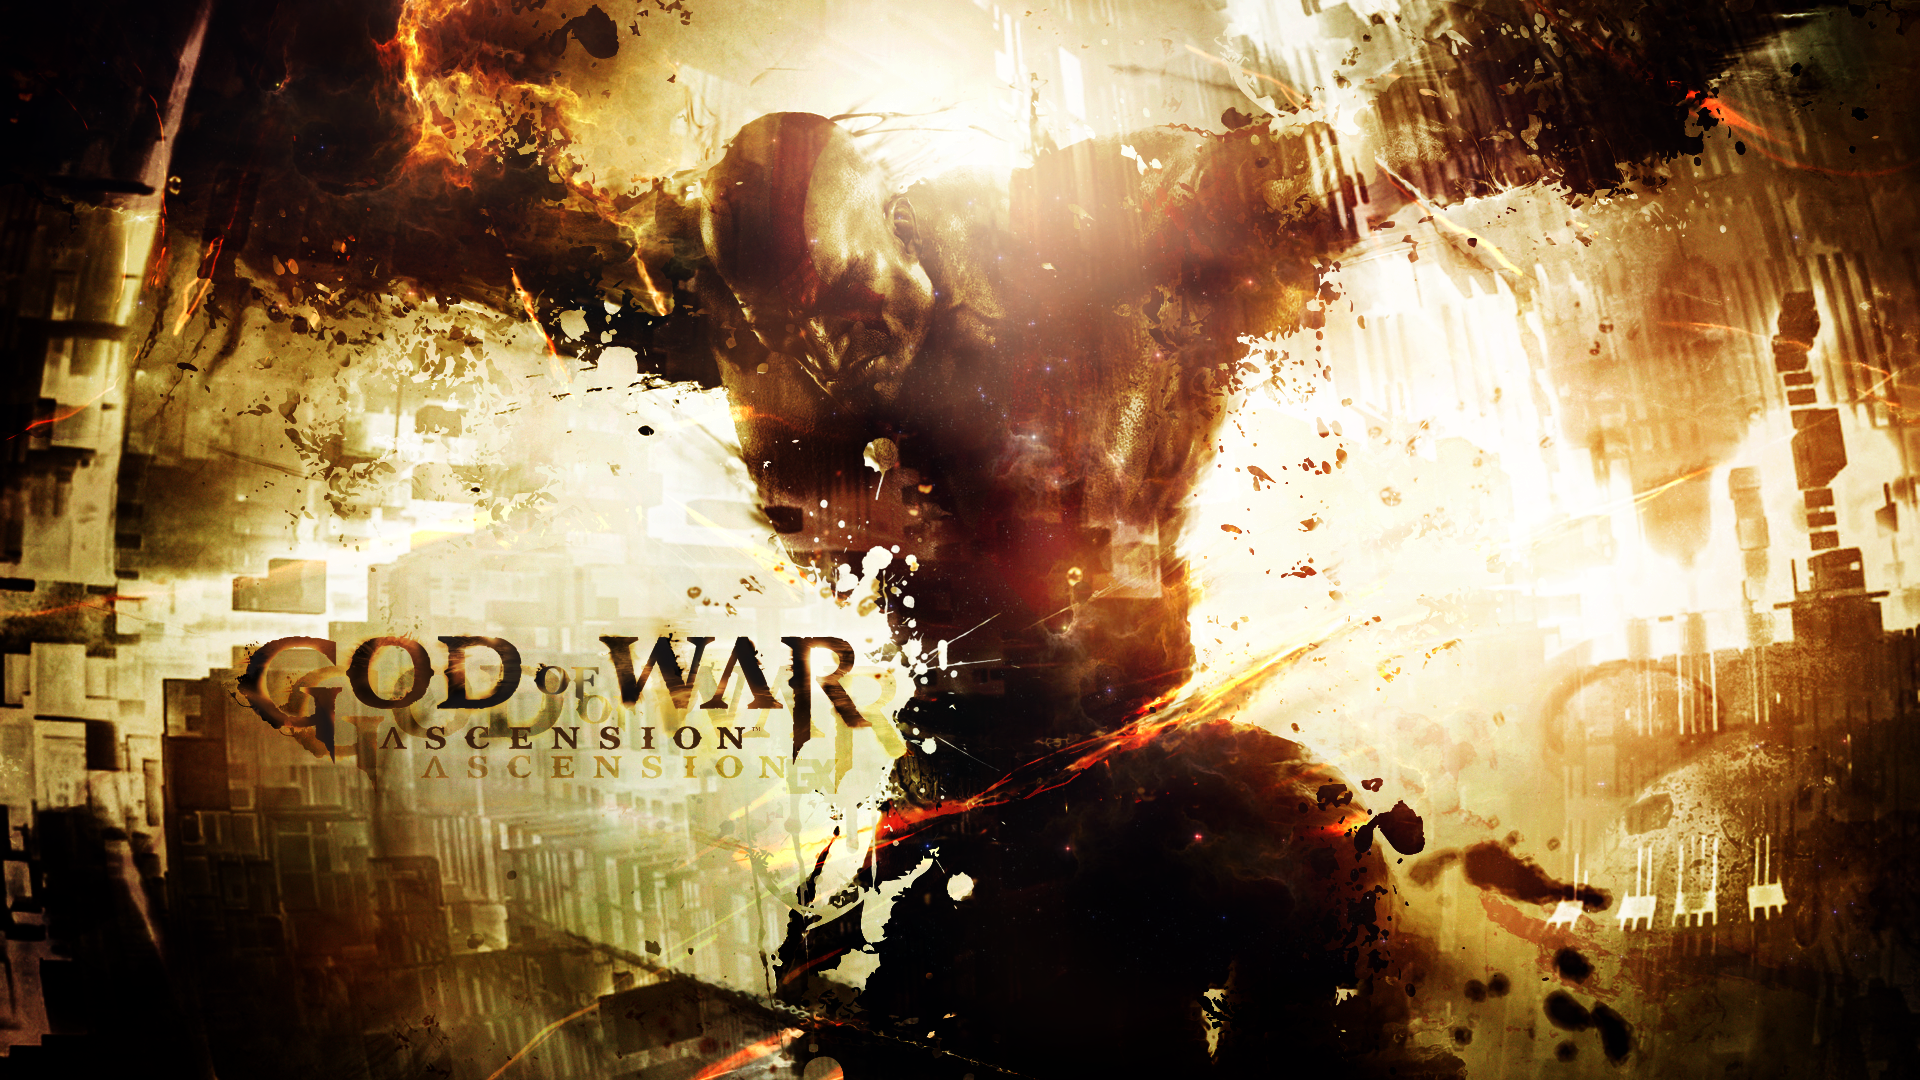 God of war ascension wallpapers 7339 wallpaper walldiskpaper god of war ascension wallpapers voltagebd Image collections